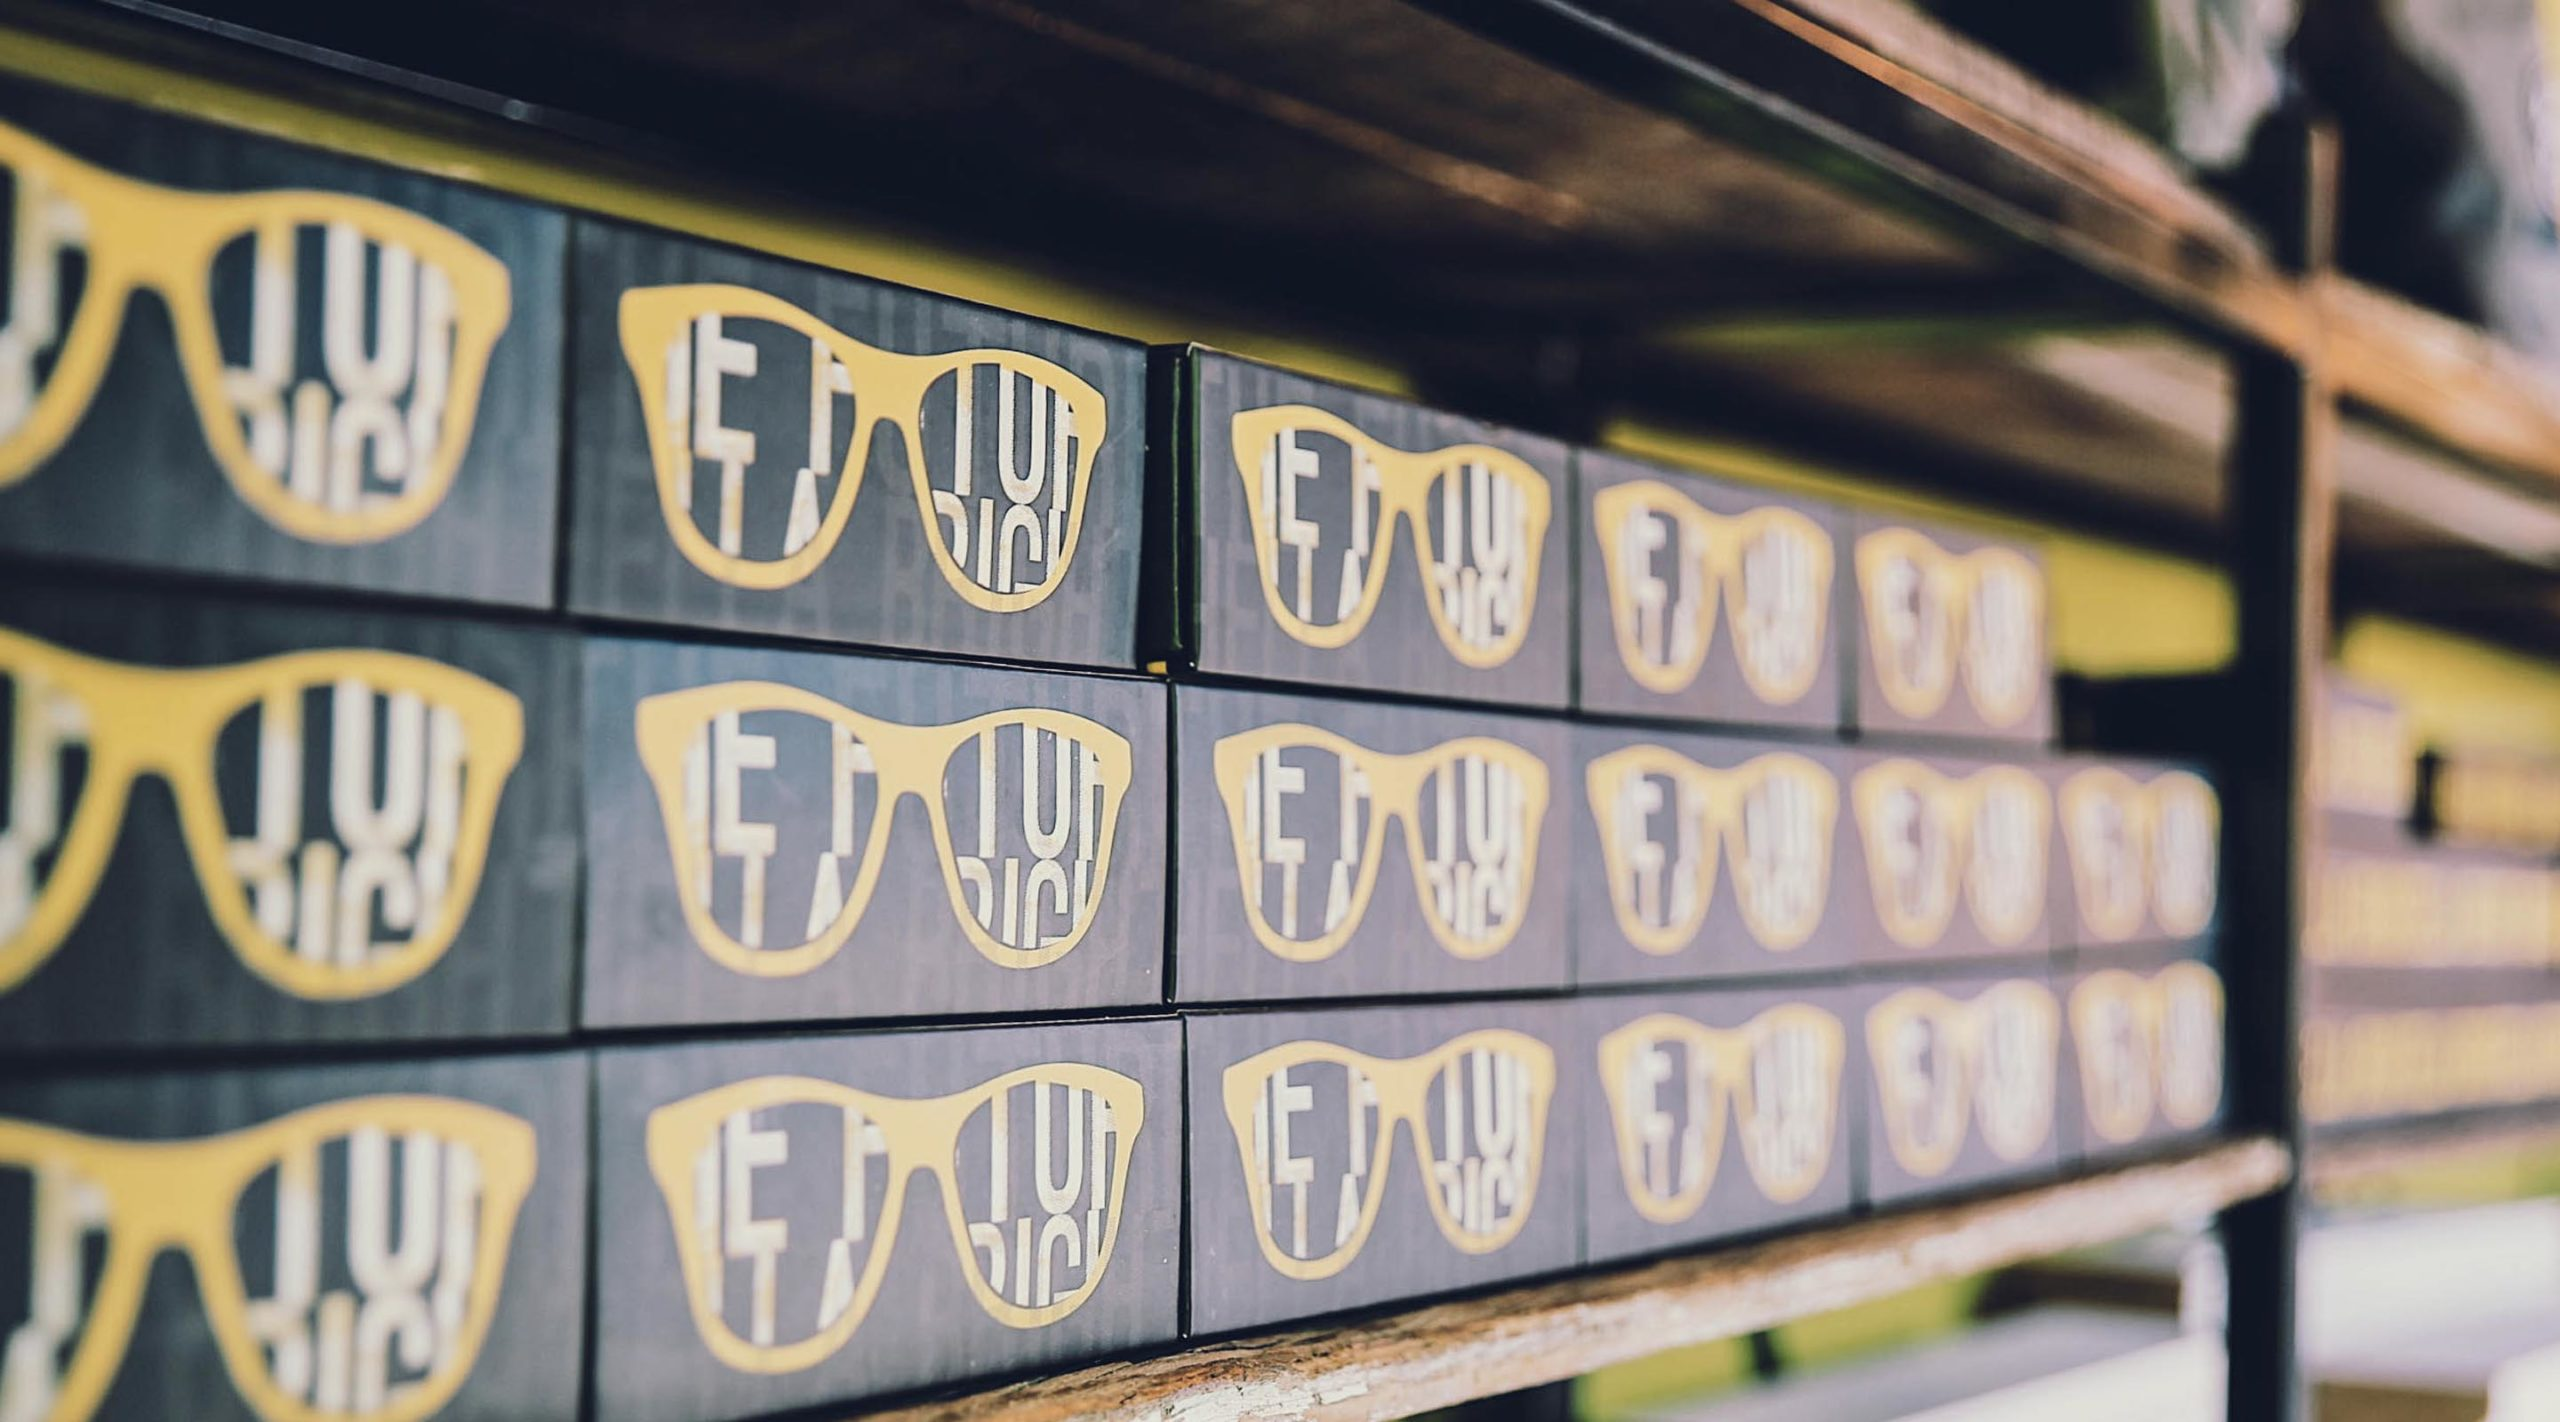 Shelf with rows of black boxes with yellow sunglasses printed on them